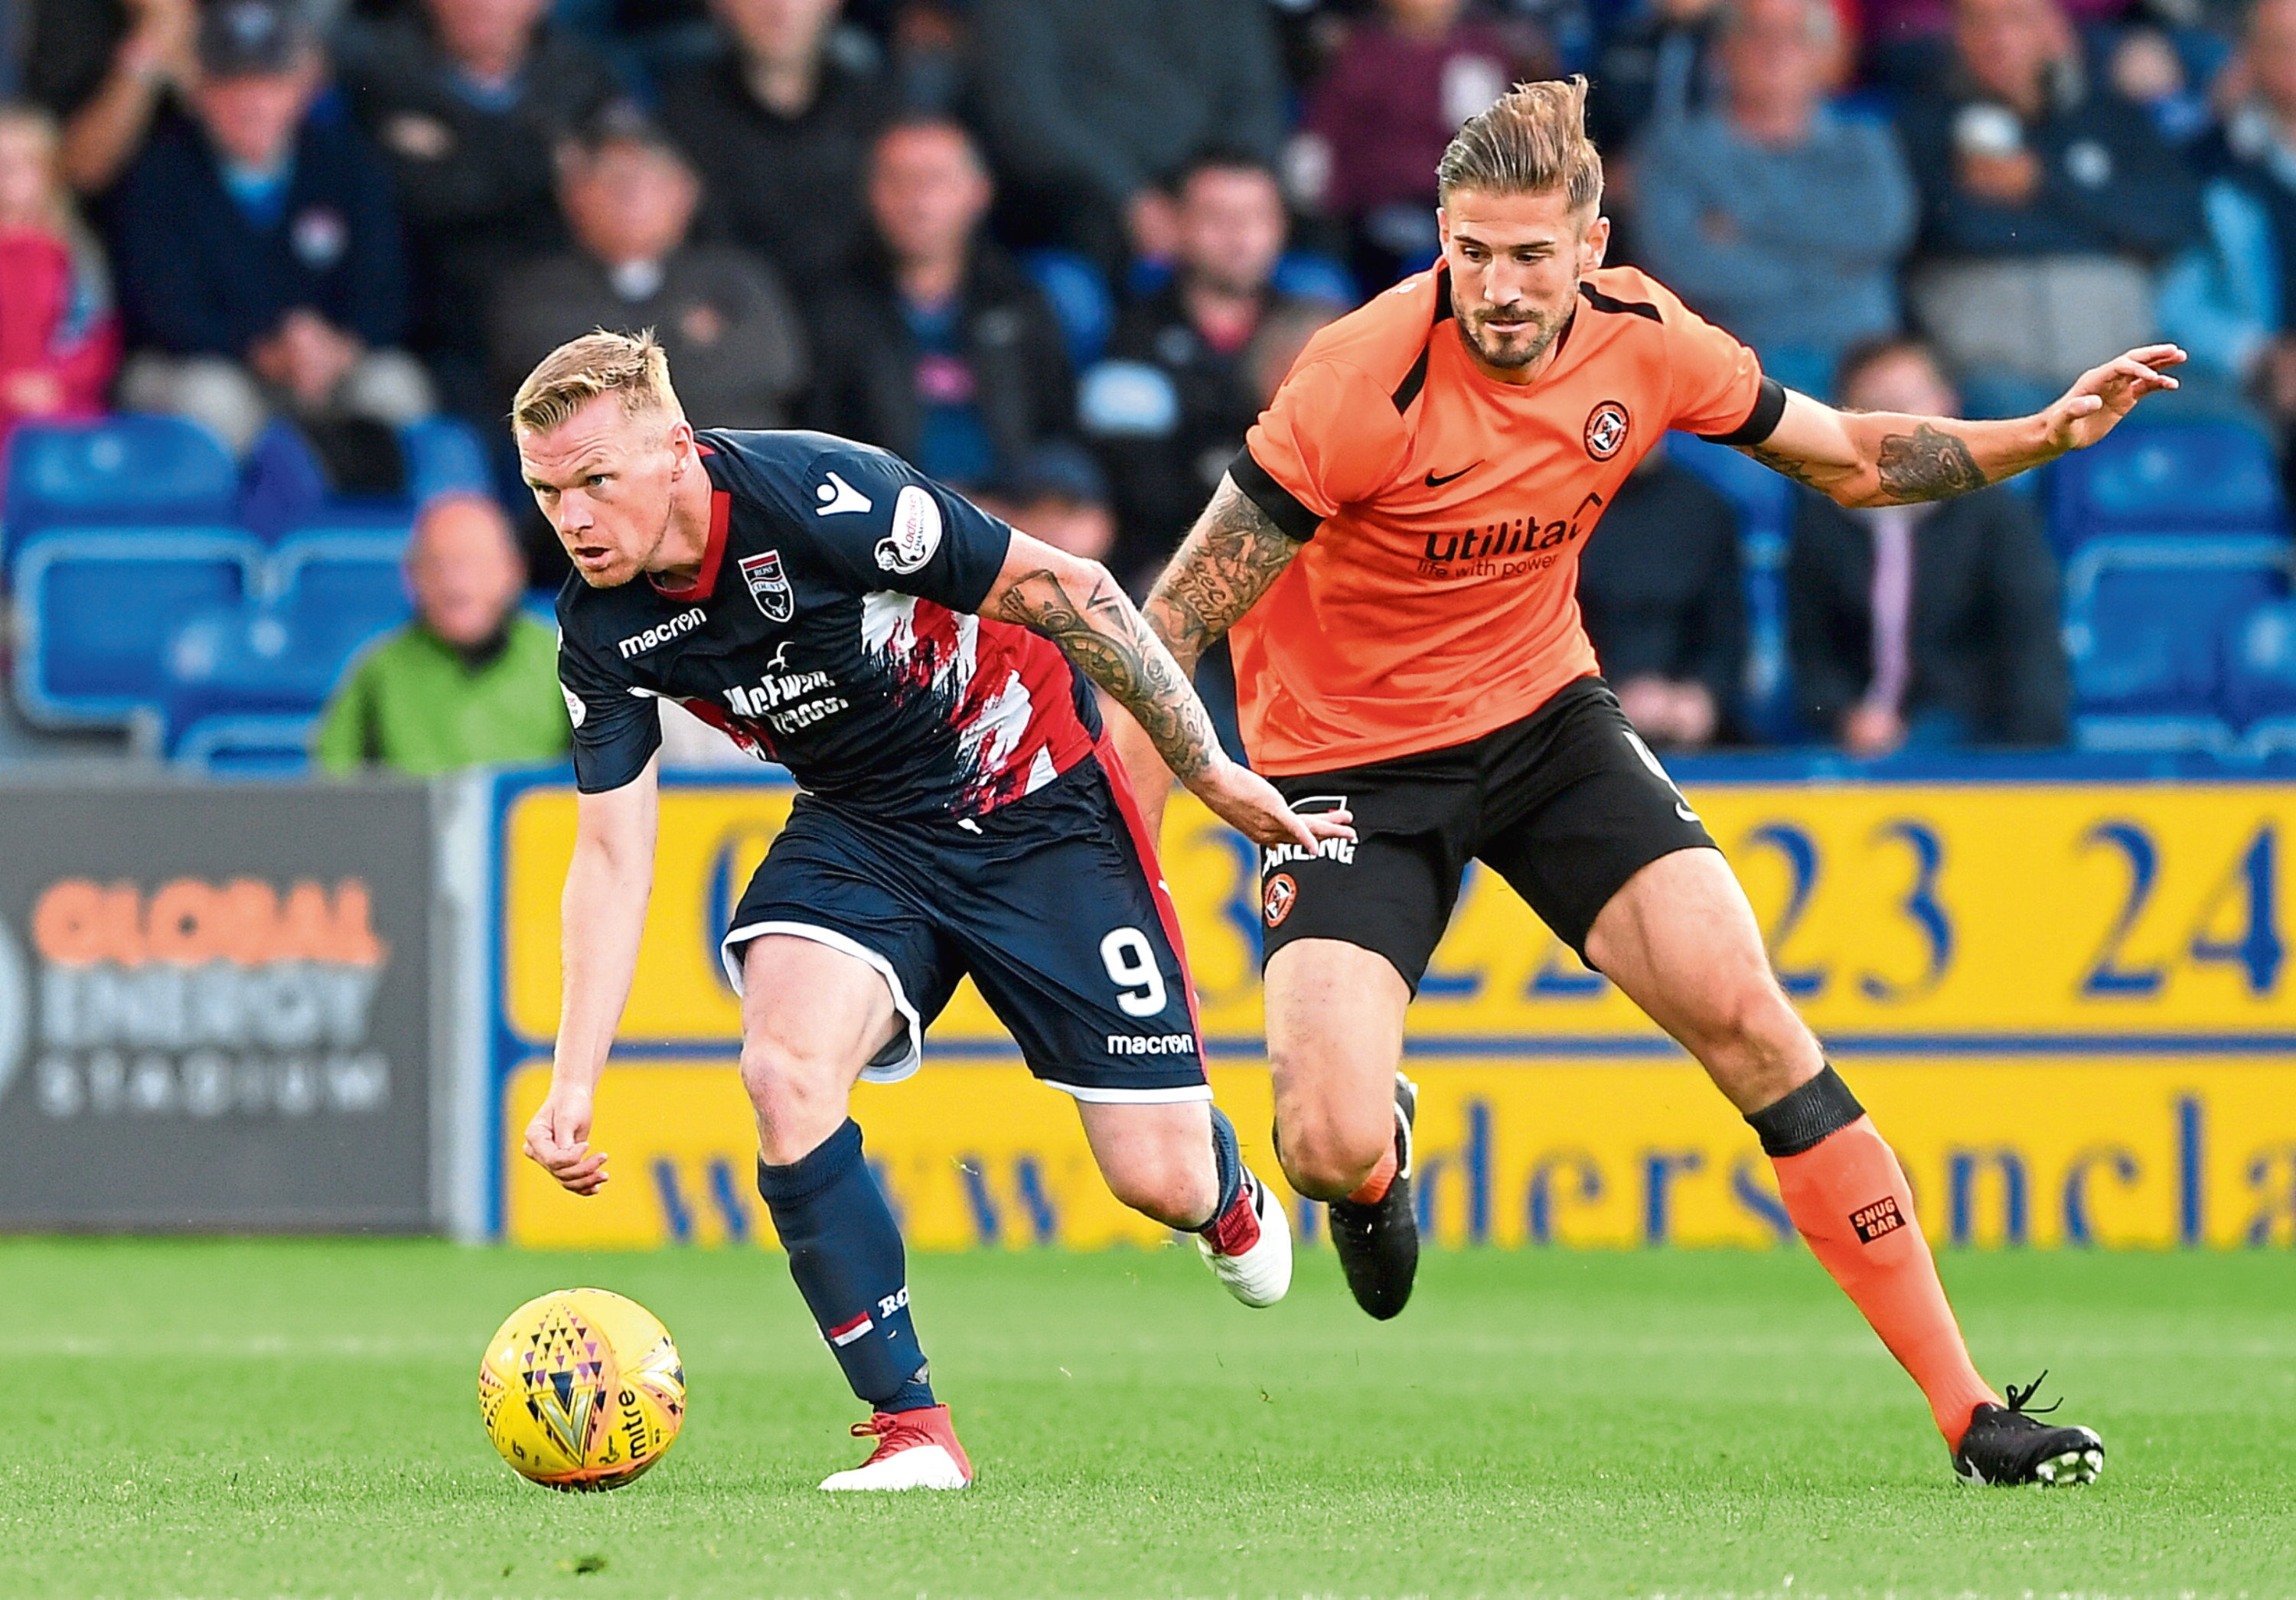 Former Dundee United striker Billy Mckay turns away from Frederic Frans during Tuesday night's game in Dingwall.